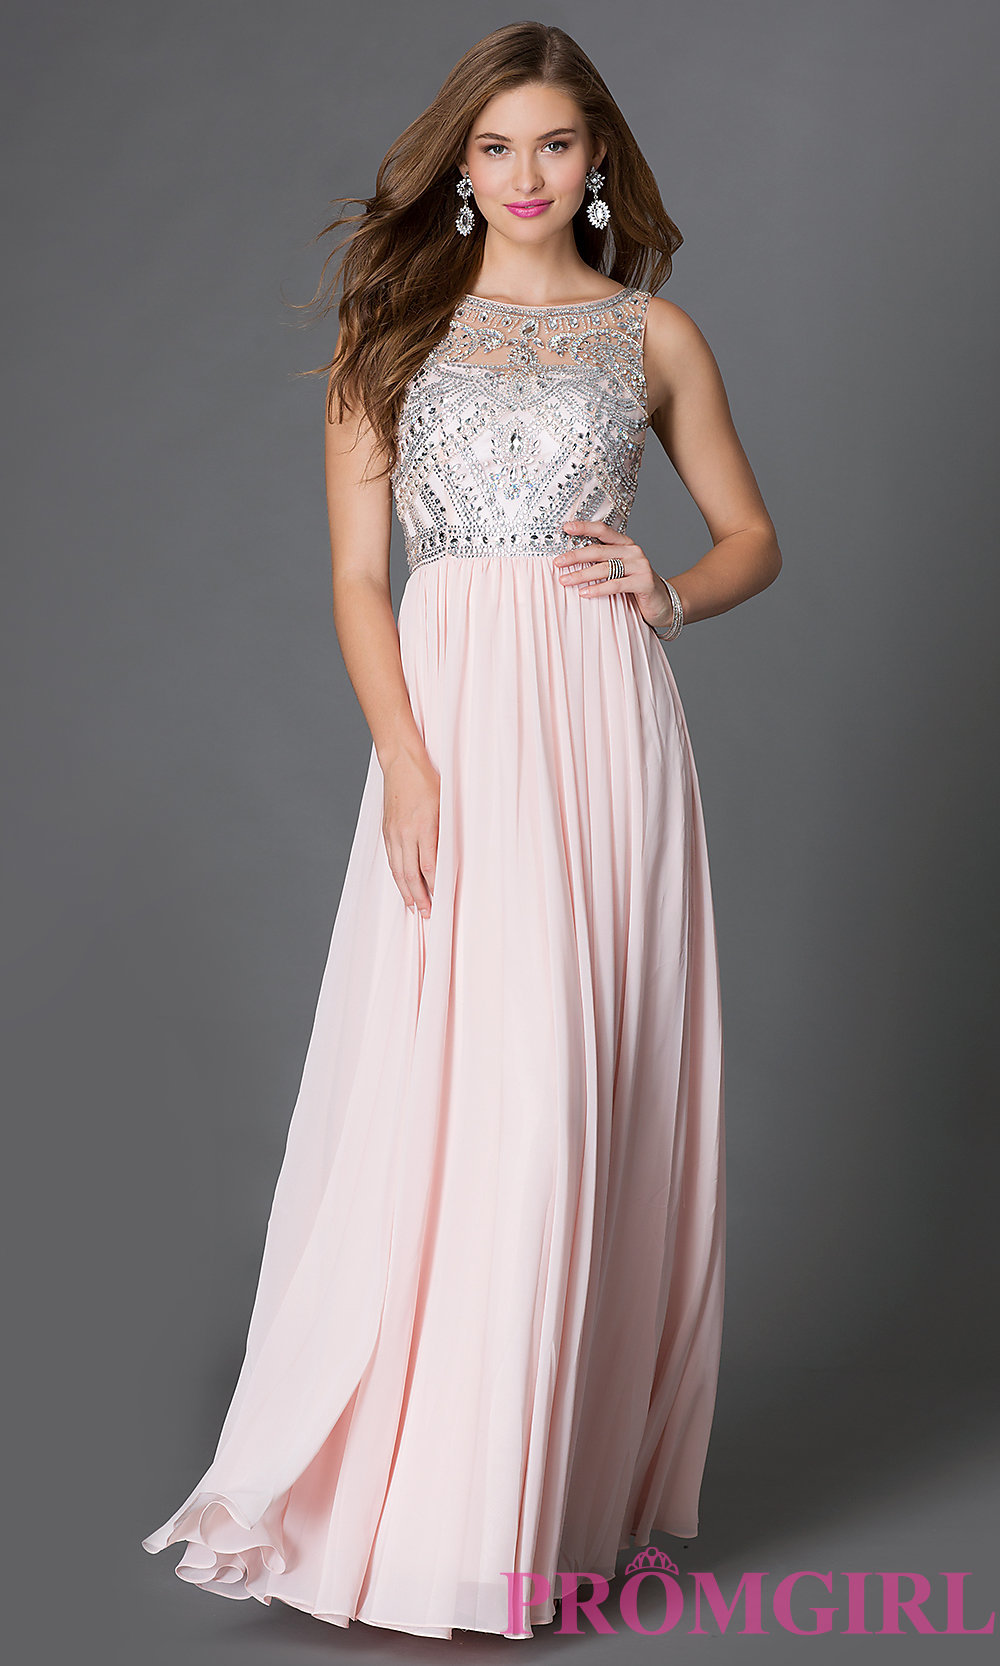 Jewelled Floor-Length Prom Dress - PromGirl